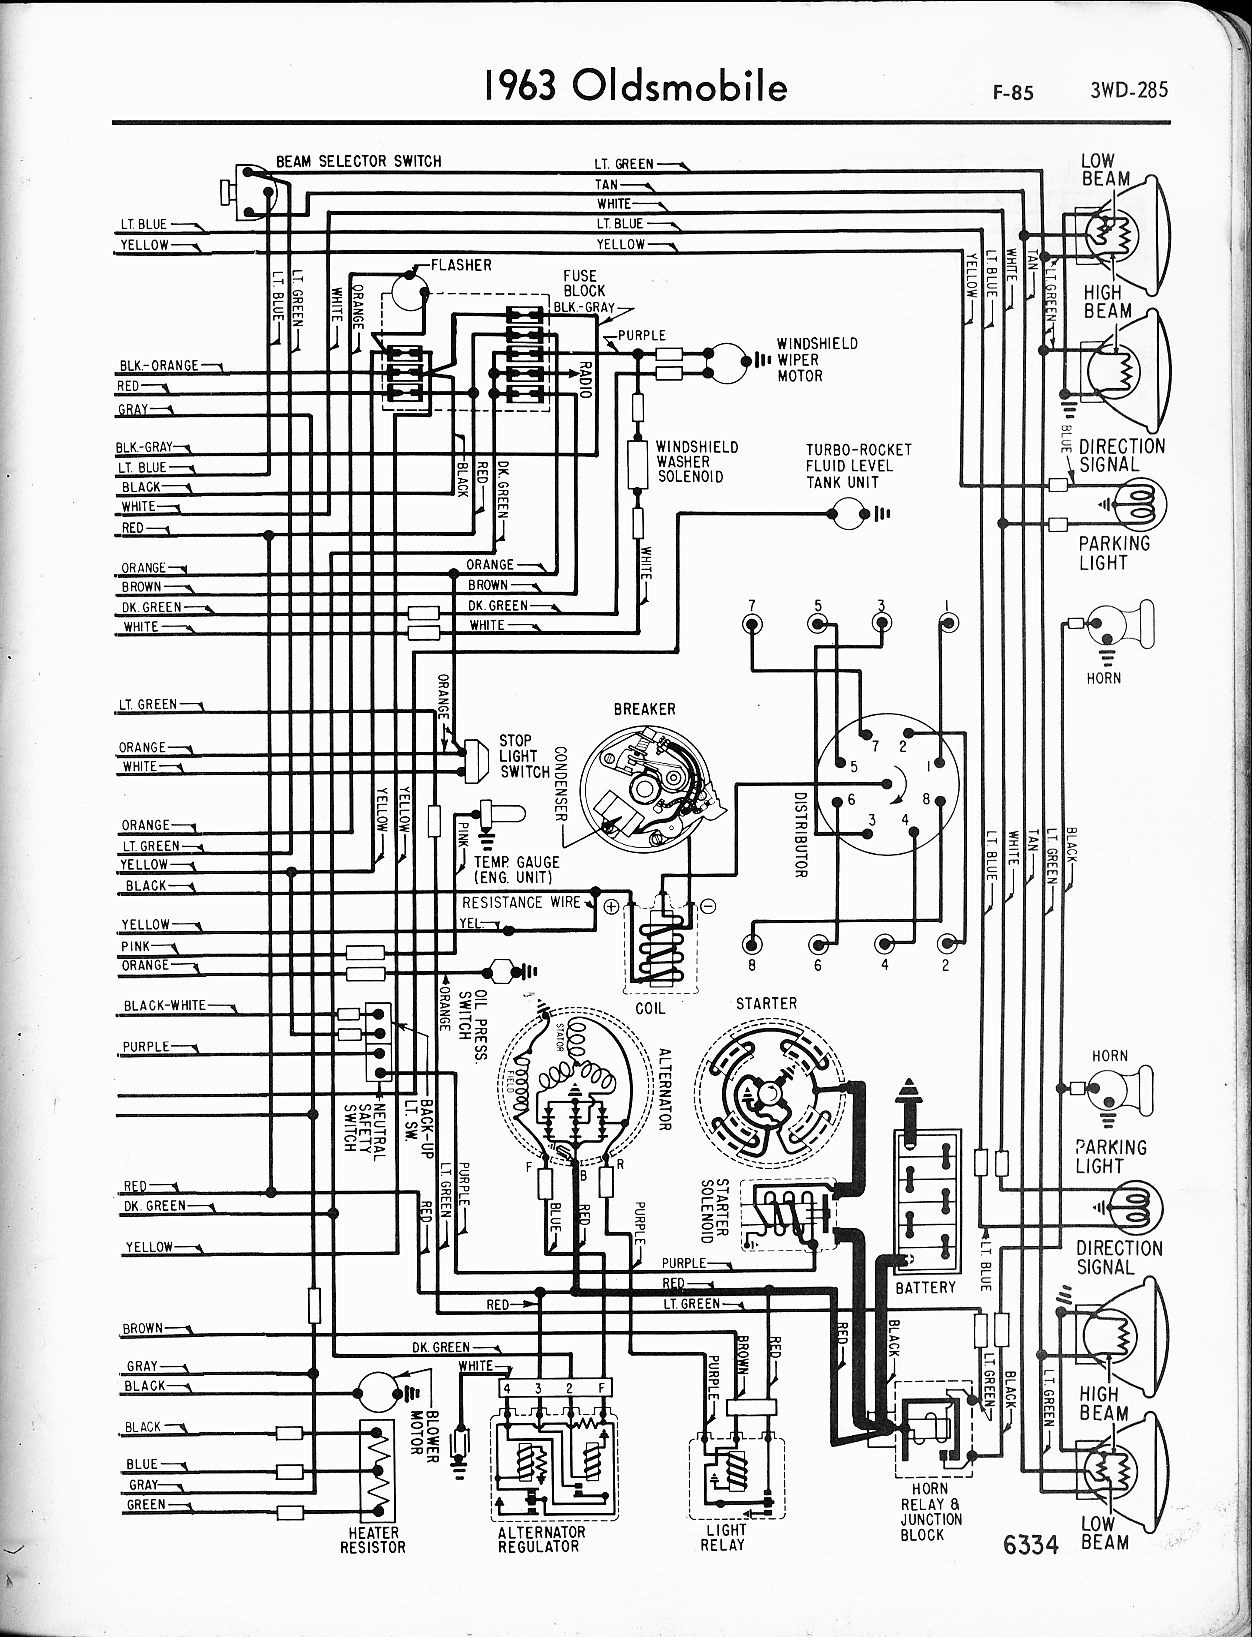 96 oldsmobile aurora engine diagram all wiring diagram 2001 Oldsmobile Aurora Engine Diagram